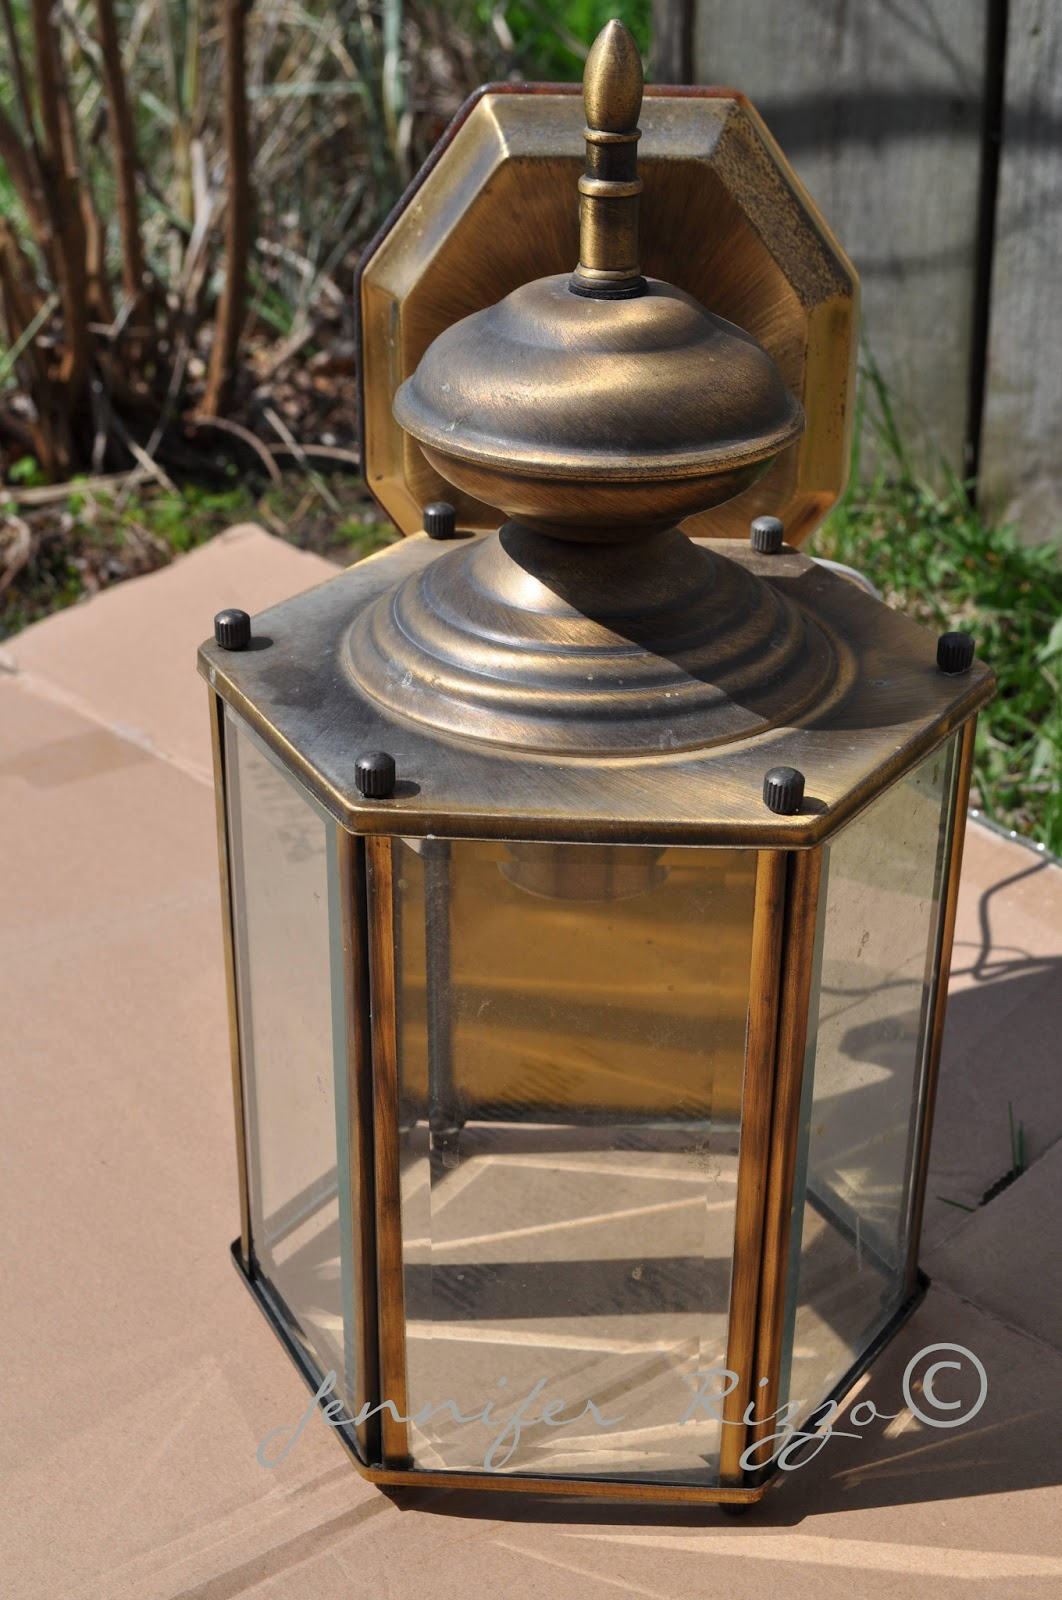 house project revamping old brass light fixtures with spray paint. Black Bedroom Furniture Sets. Home Design Ideas